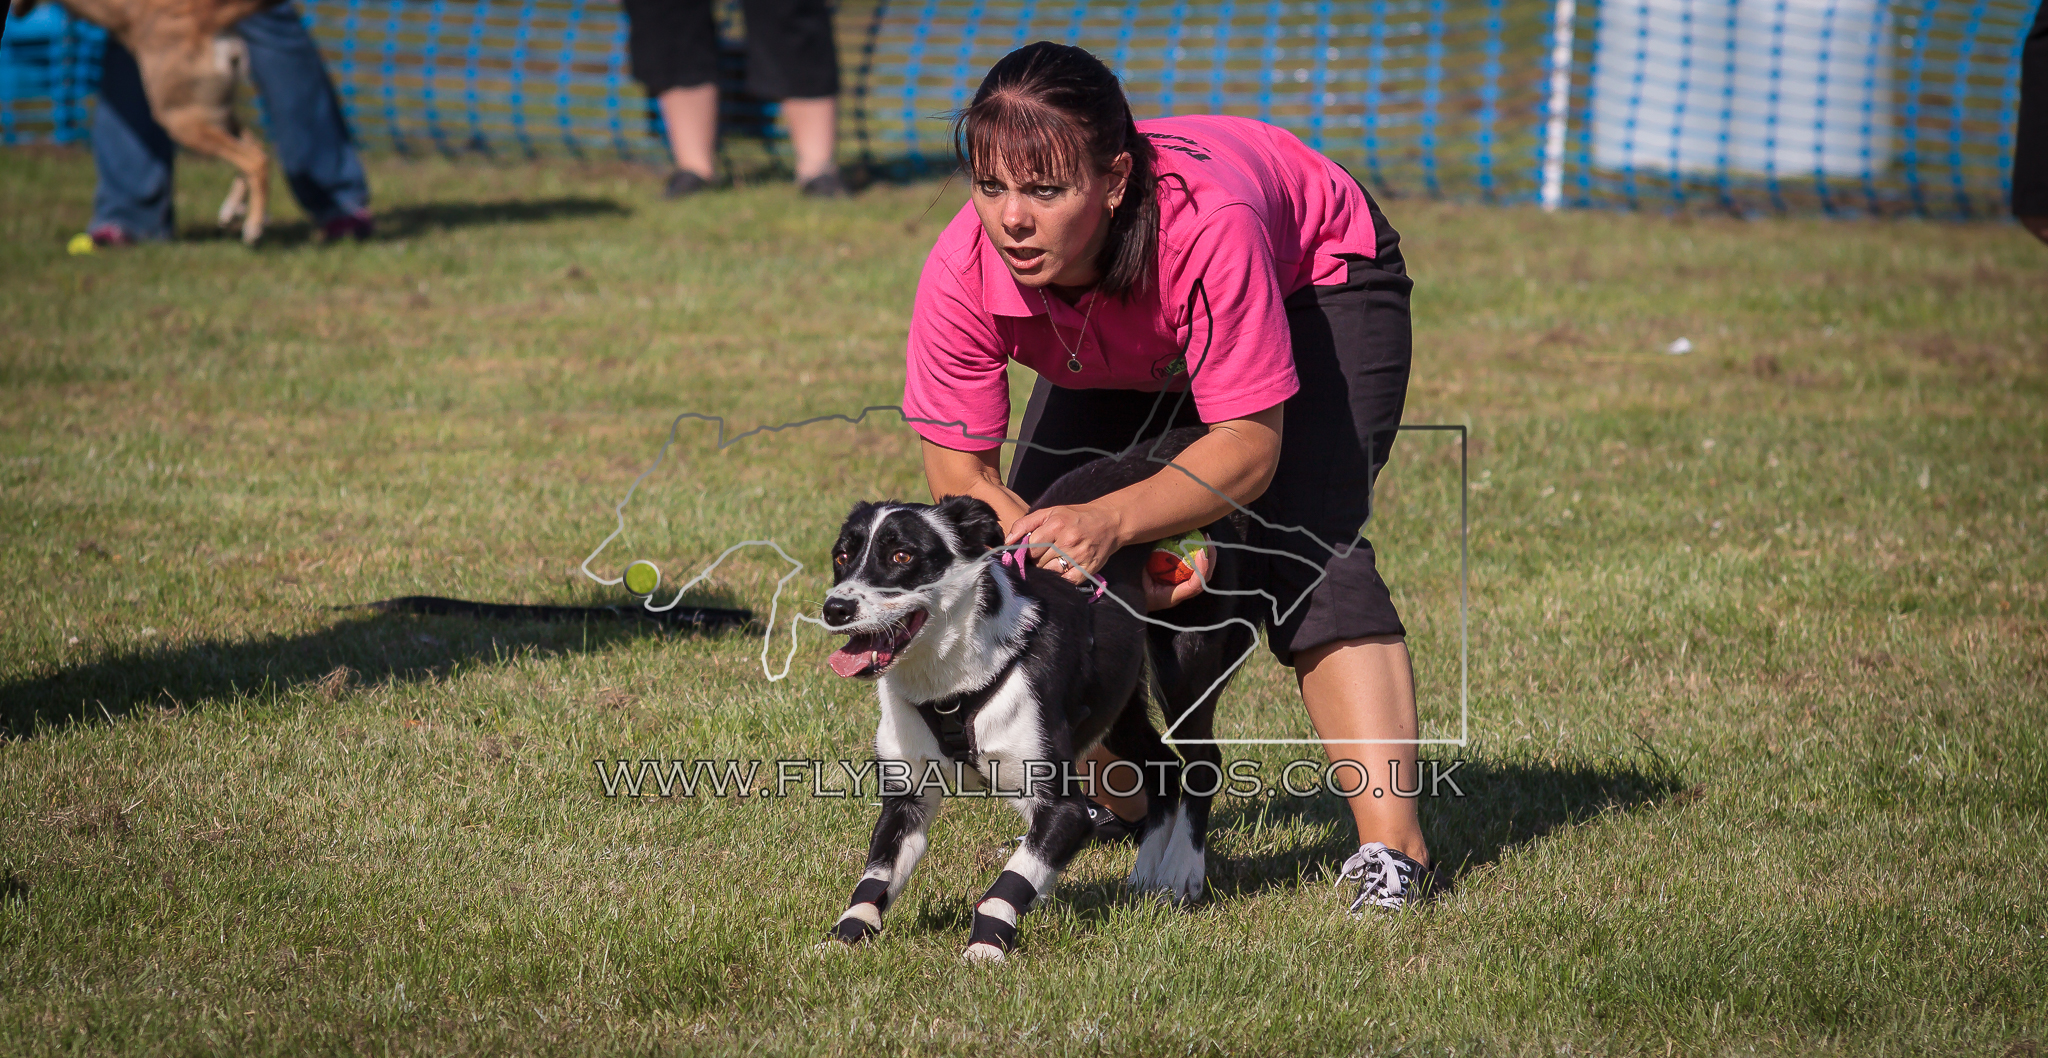 Tails we win flyball release